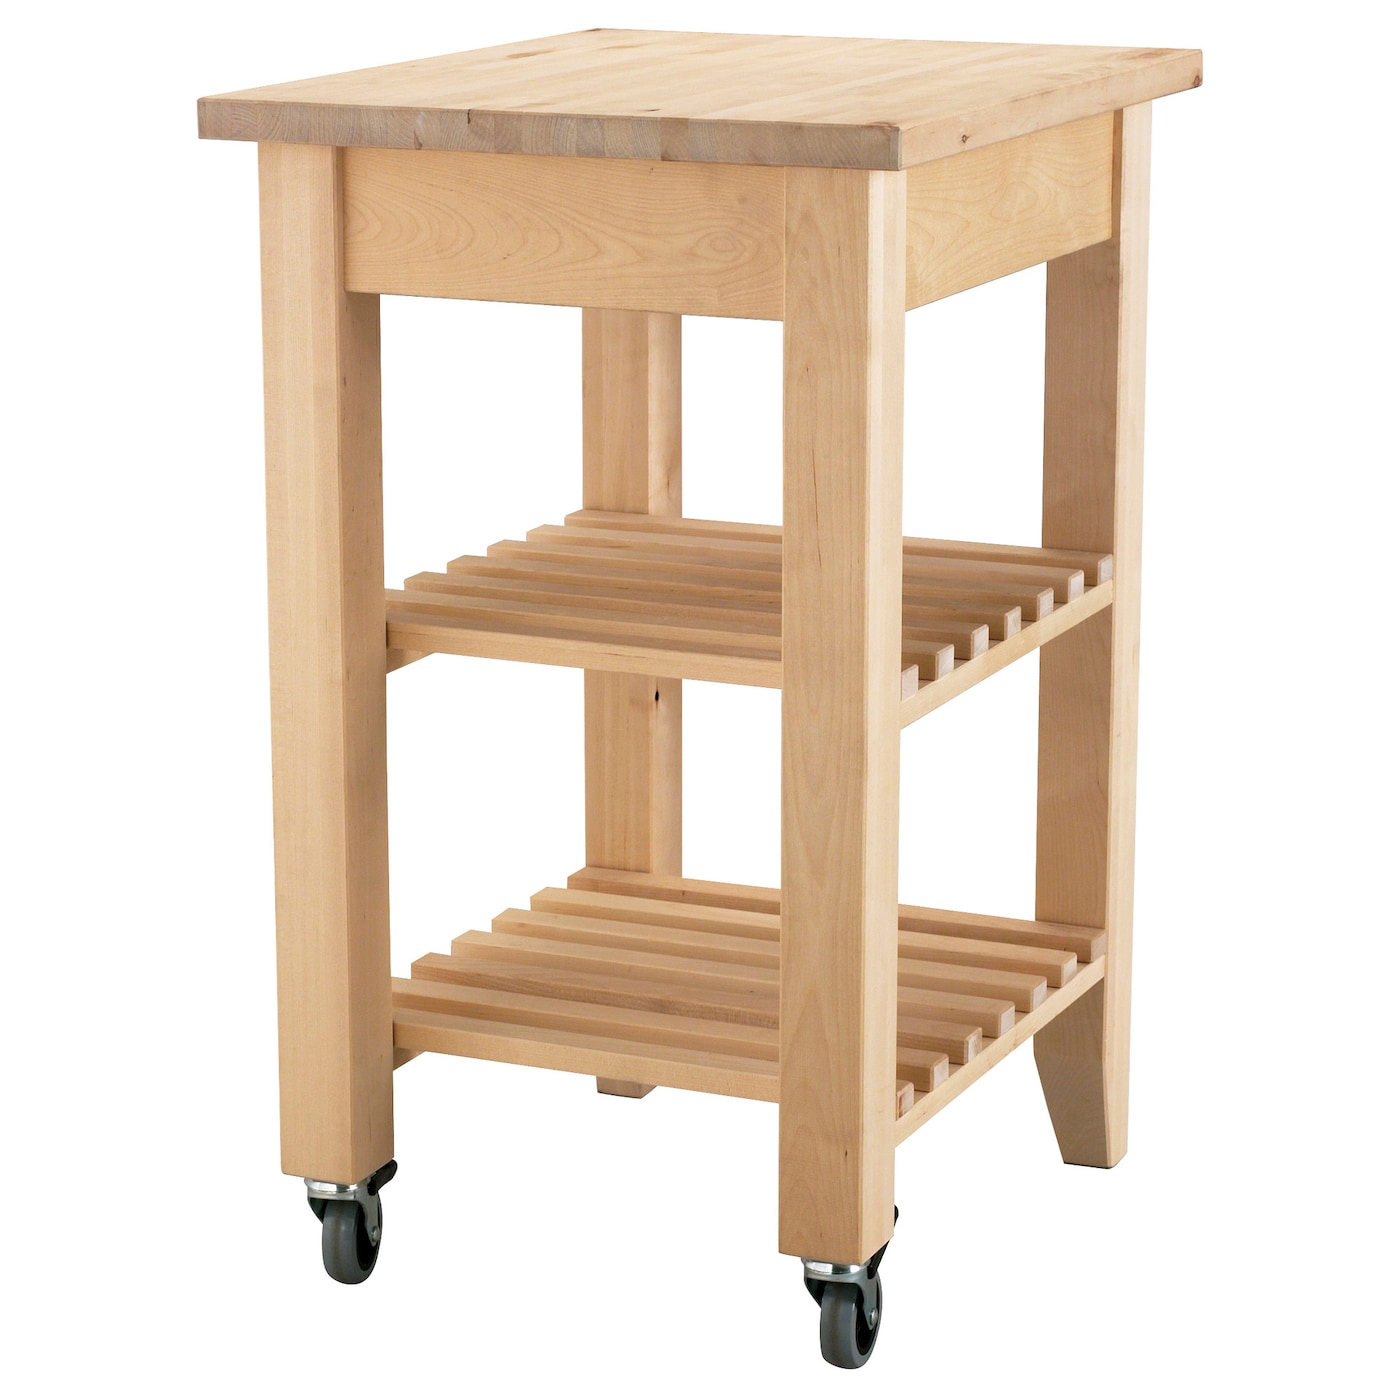 Ikea Bekv M Kitchen Trolley Solid Wood Can Be Sanded And Surface Treated As Needed